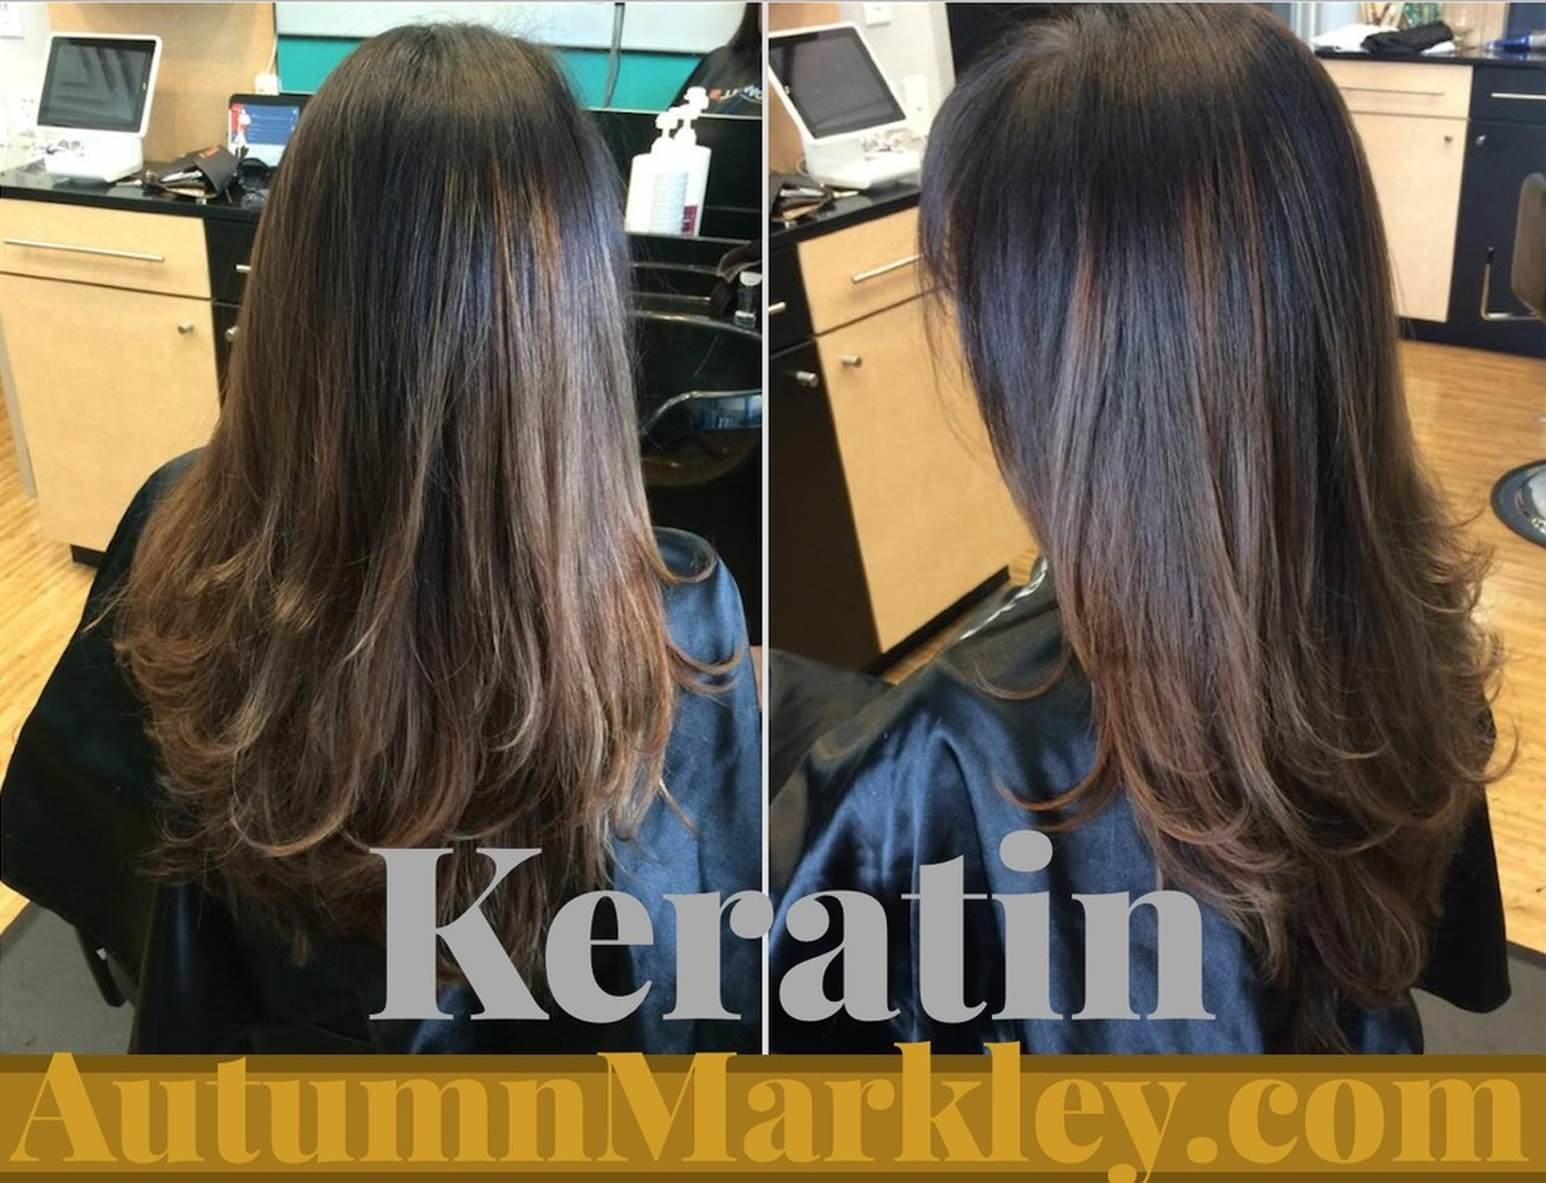 New Best Hair Salon In Fort Lauderdale Image Of Hair Salon Ideas With Pictures